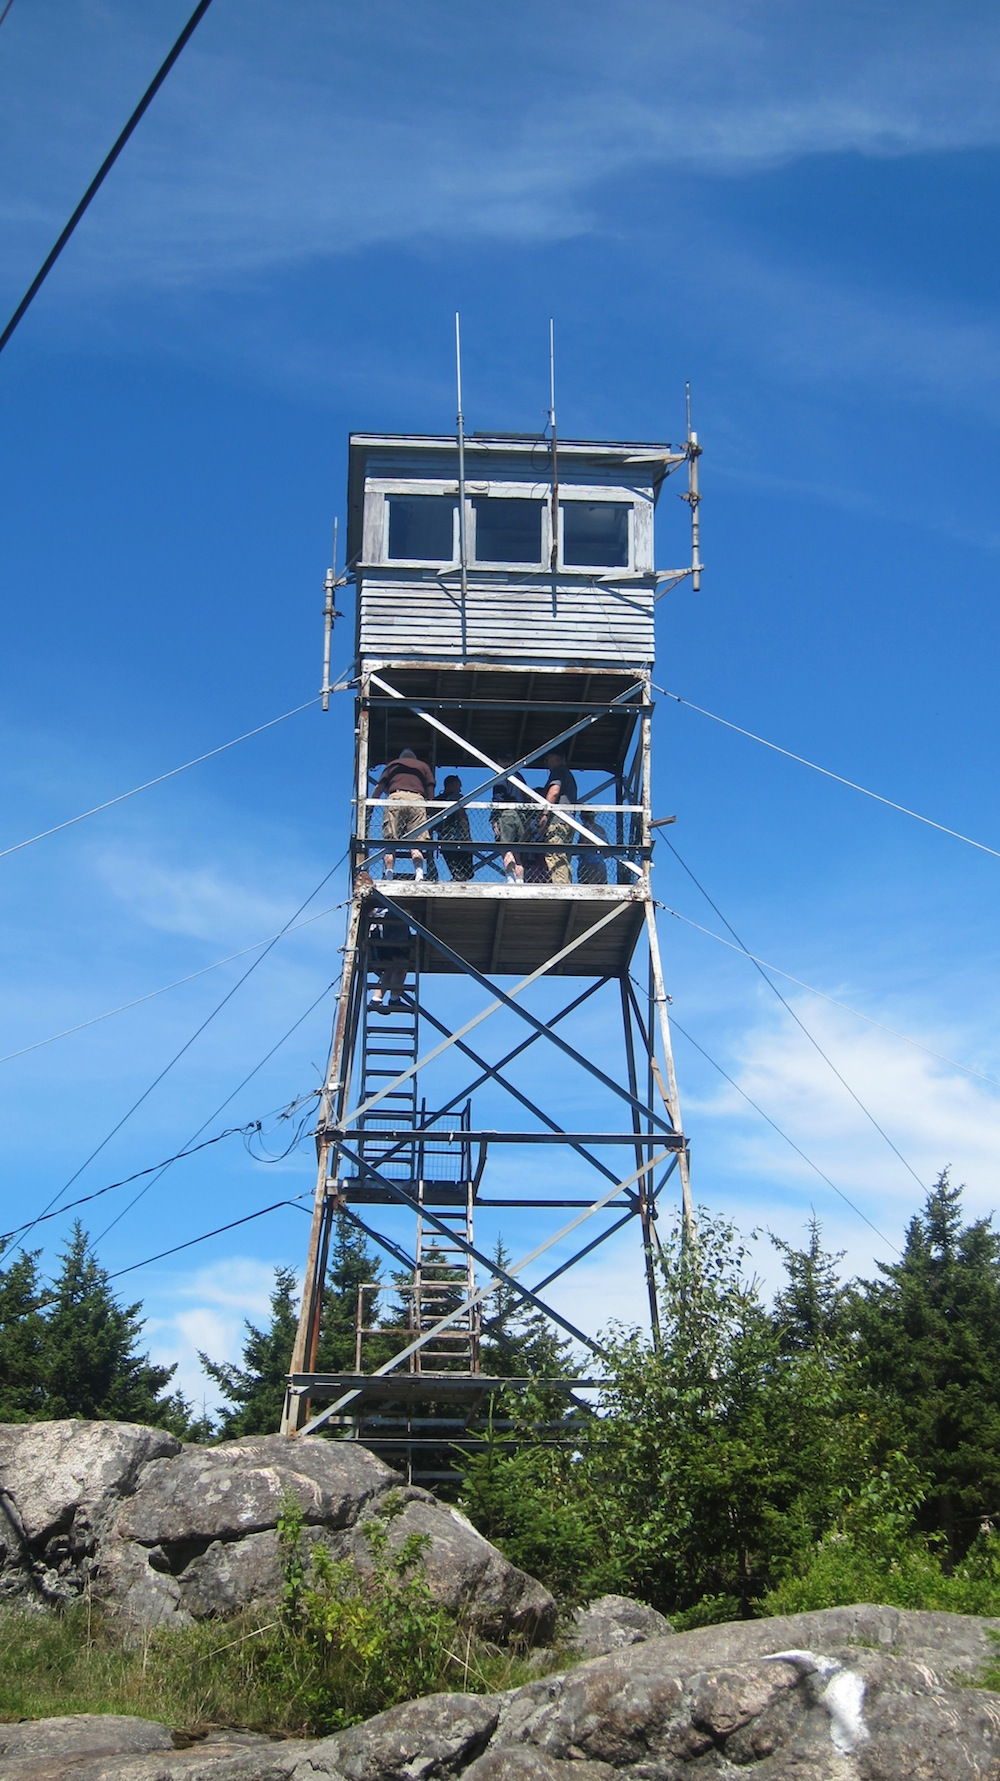 Here's the Belknap fire tower. You can see people that crowded the platform where I did my SOTA activation. They came up after I was finished.